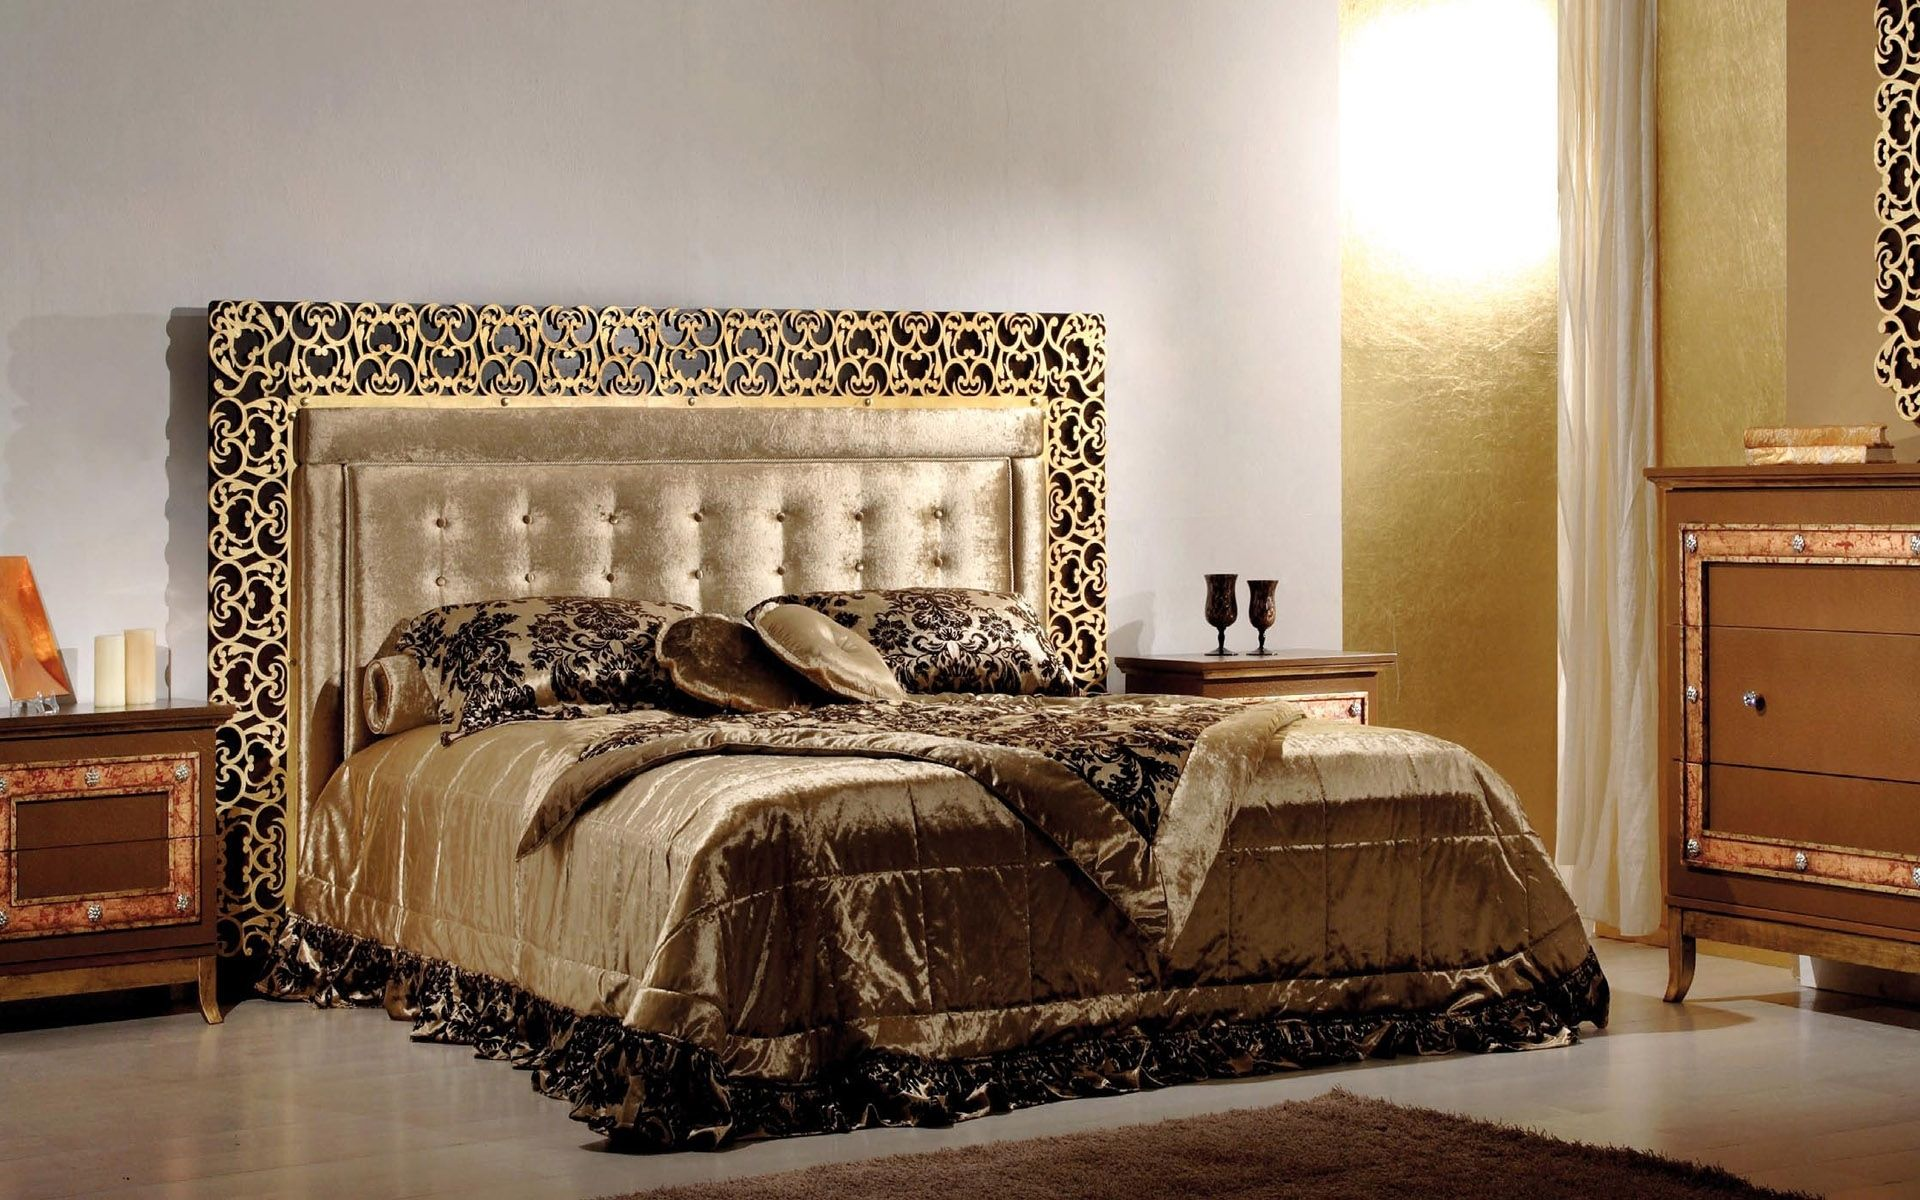 Luxury inspiration bed collection design modern gold black for Matrimonial bedroom design